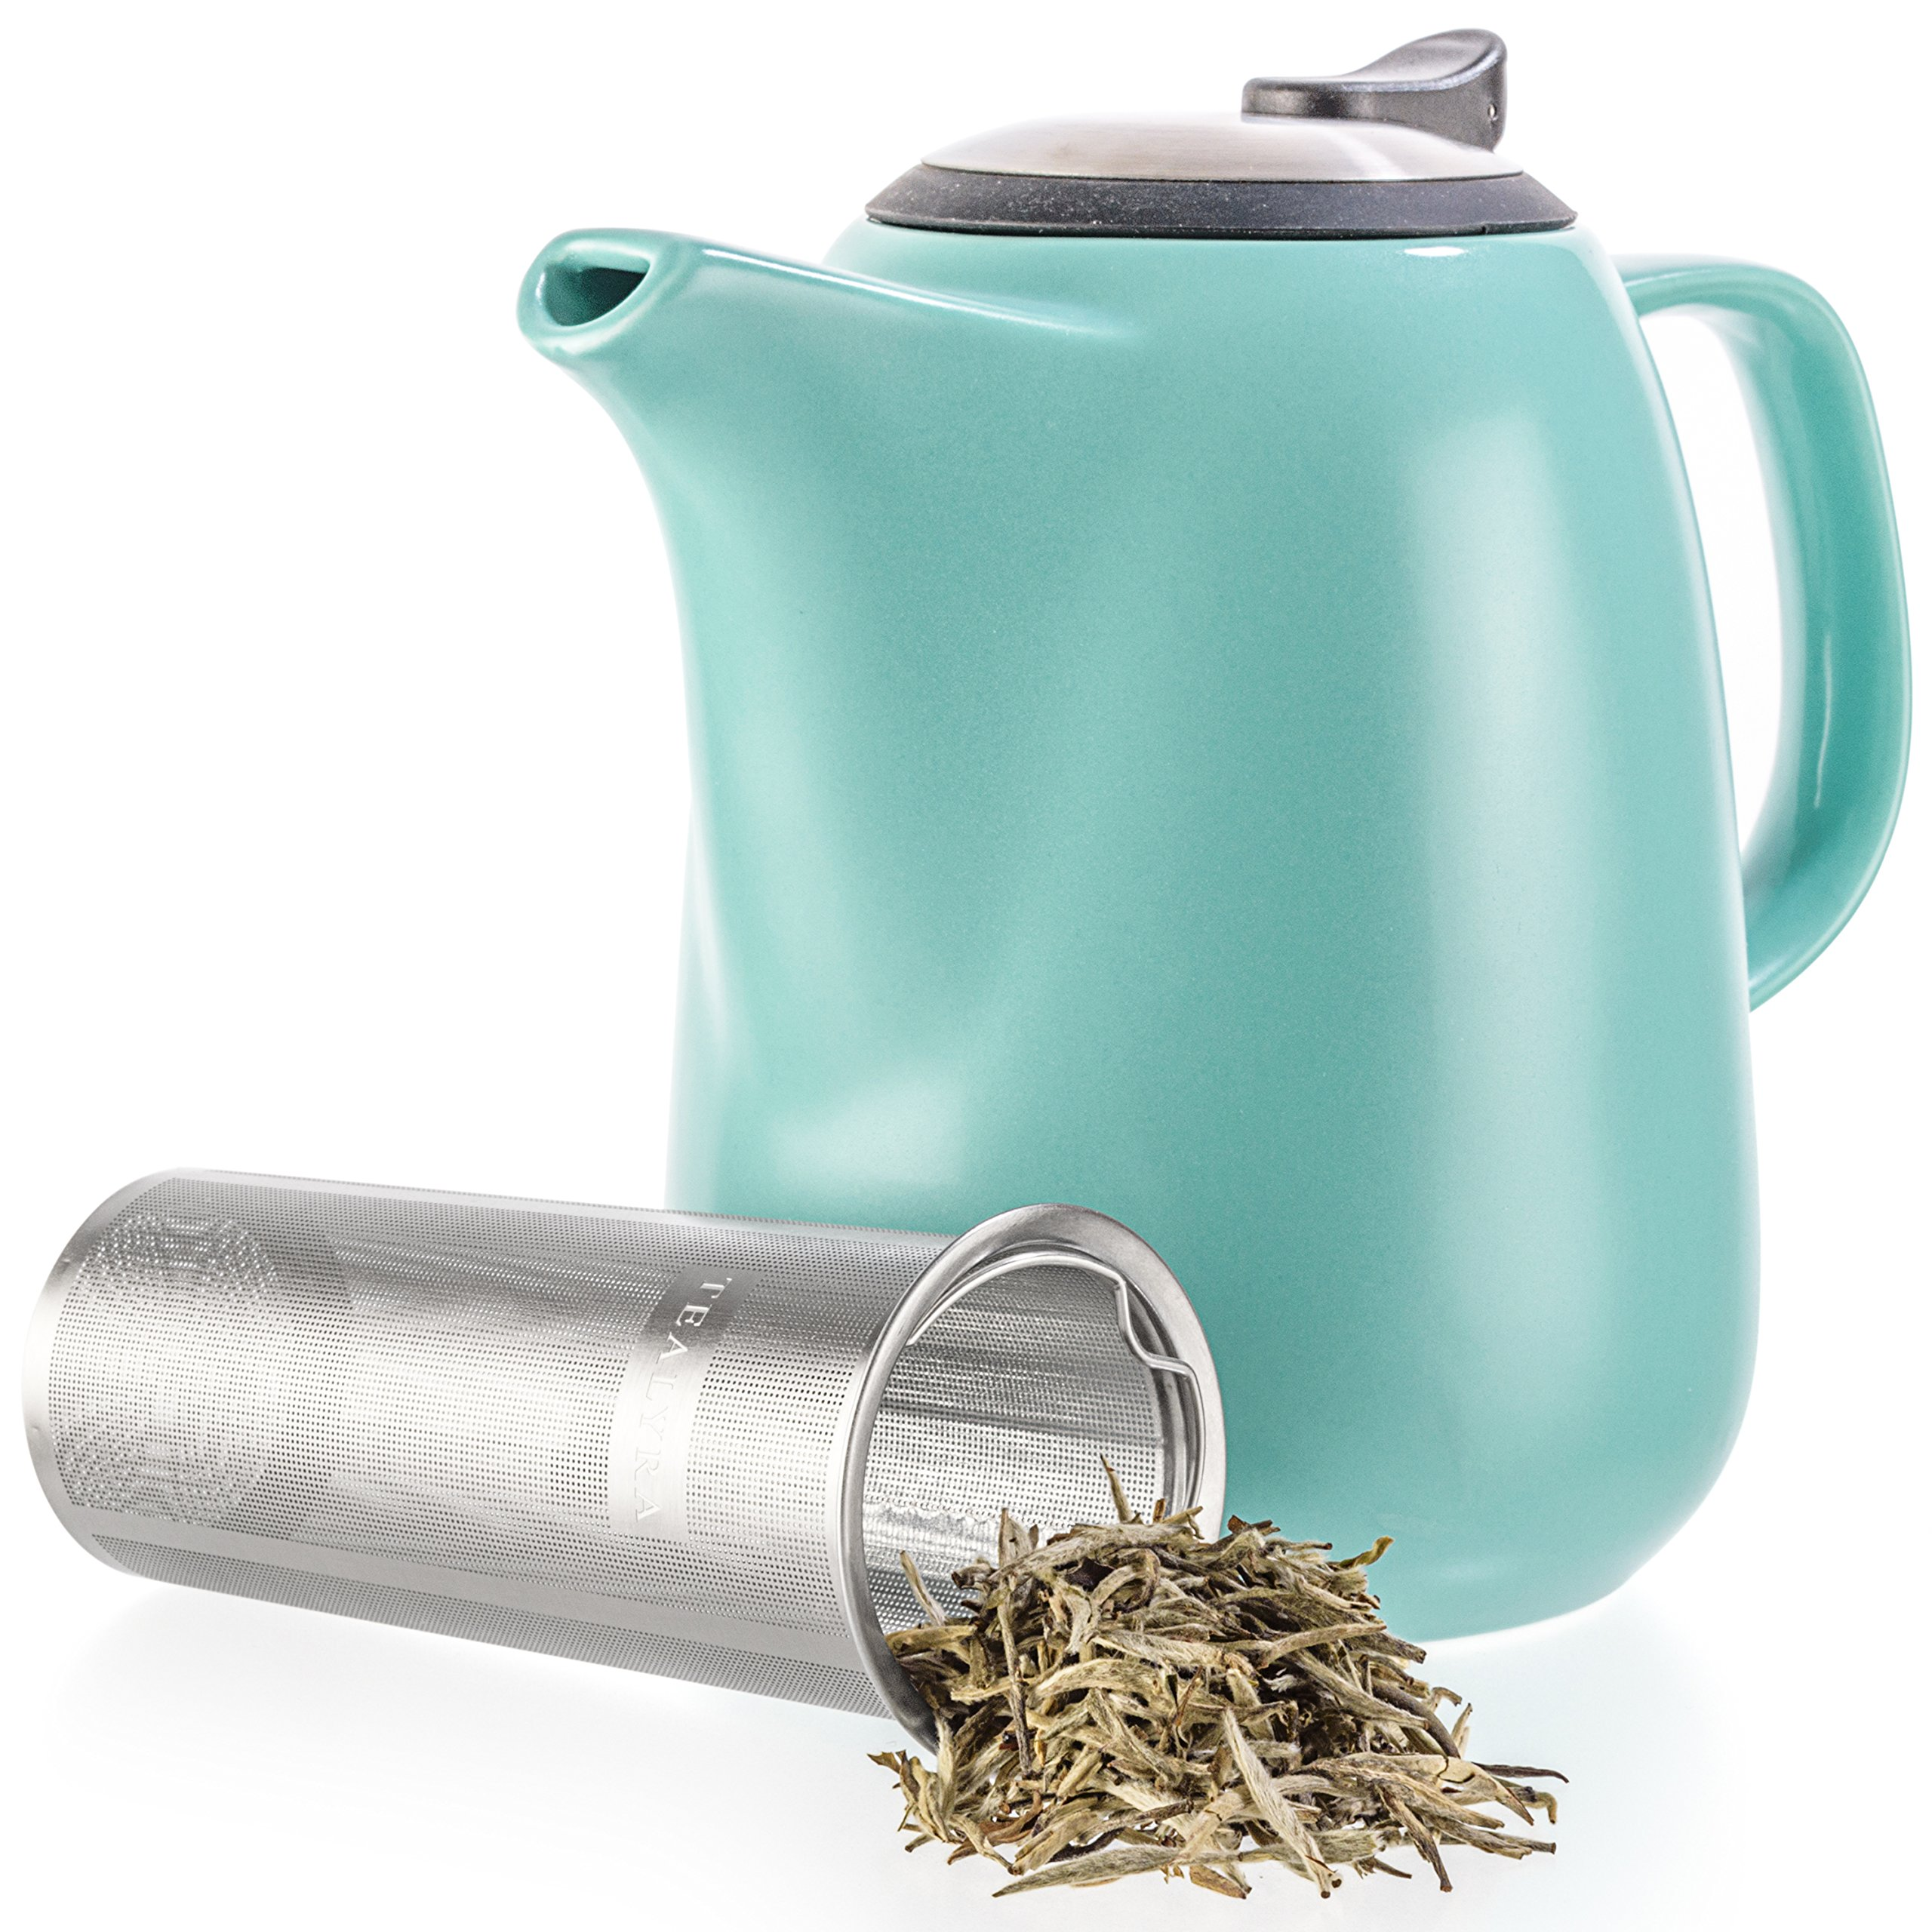 Tealyra - Daze Ceramic Large Teapot Turquoise - 47-ounce (6-7 cups) - With Stainless Steel Lid Extra-Fine Infuser for Loose Leaf Tea - 1400ml